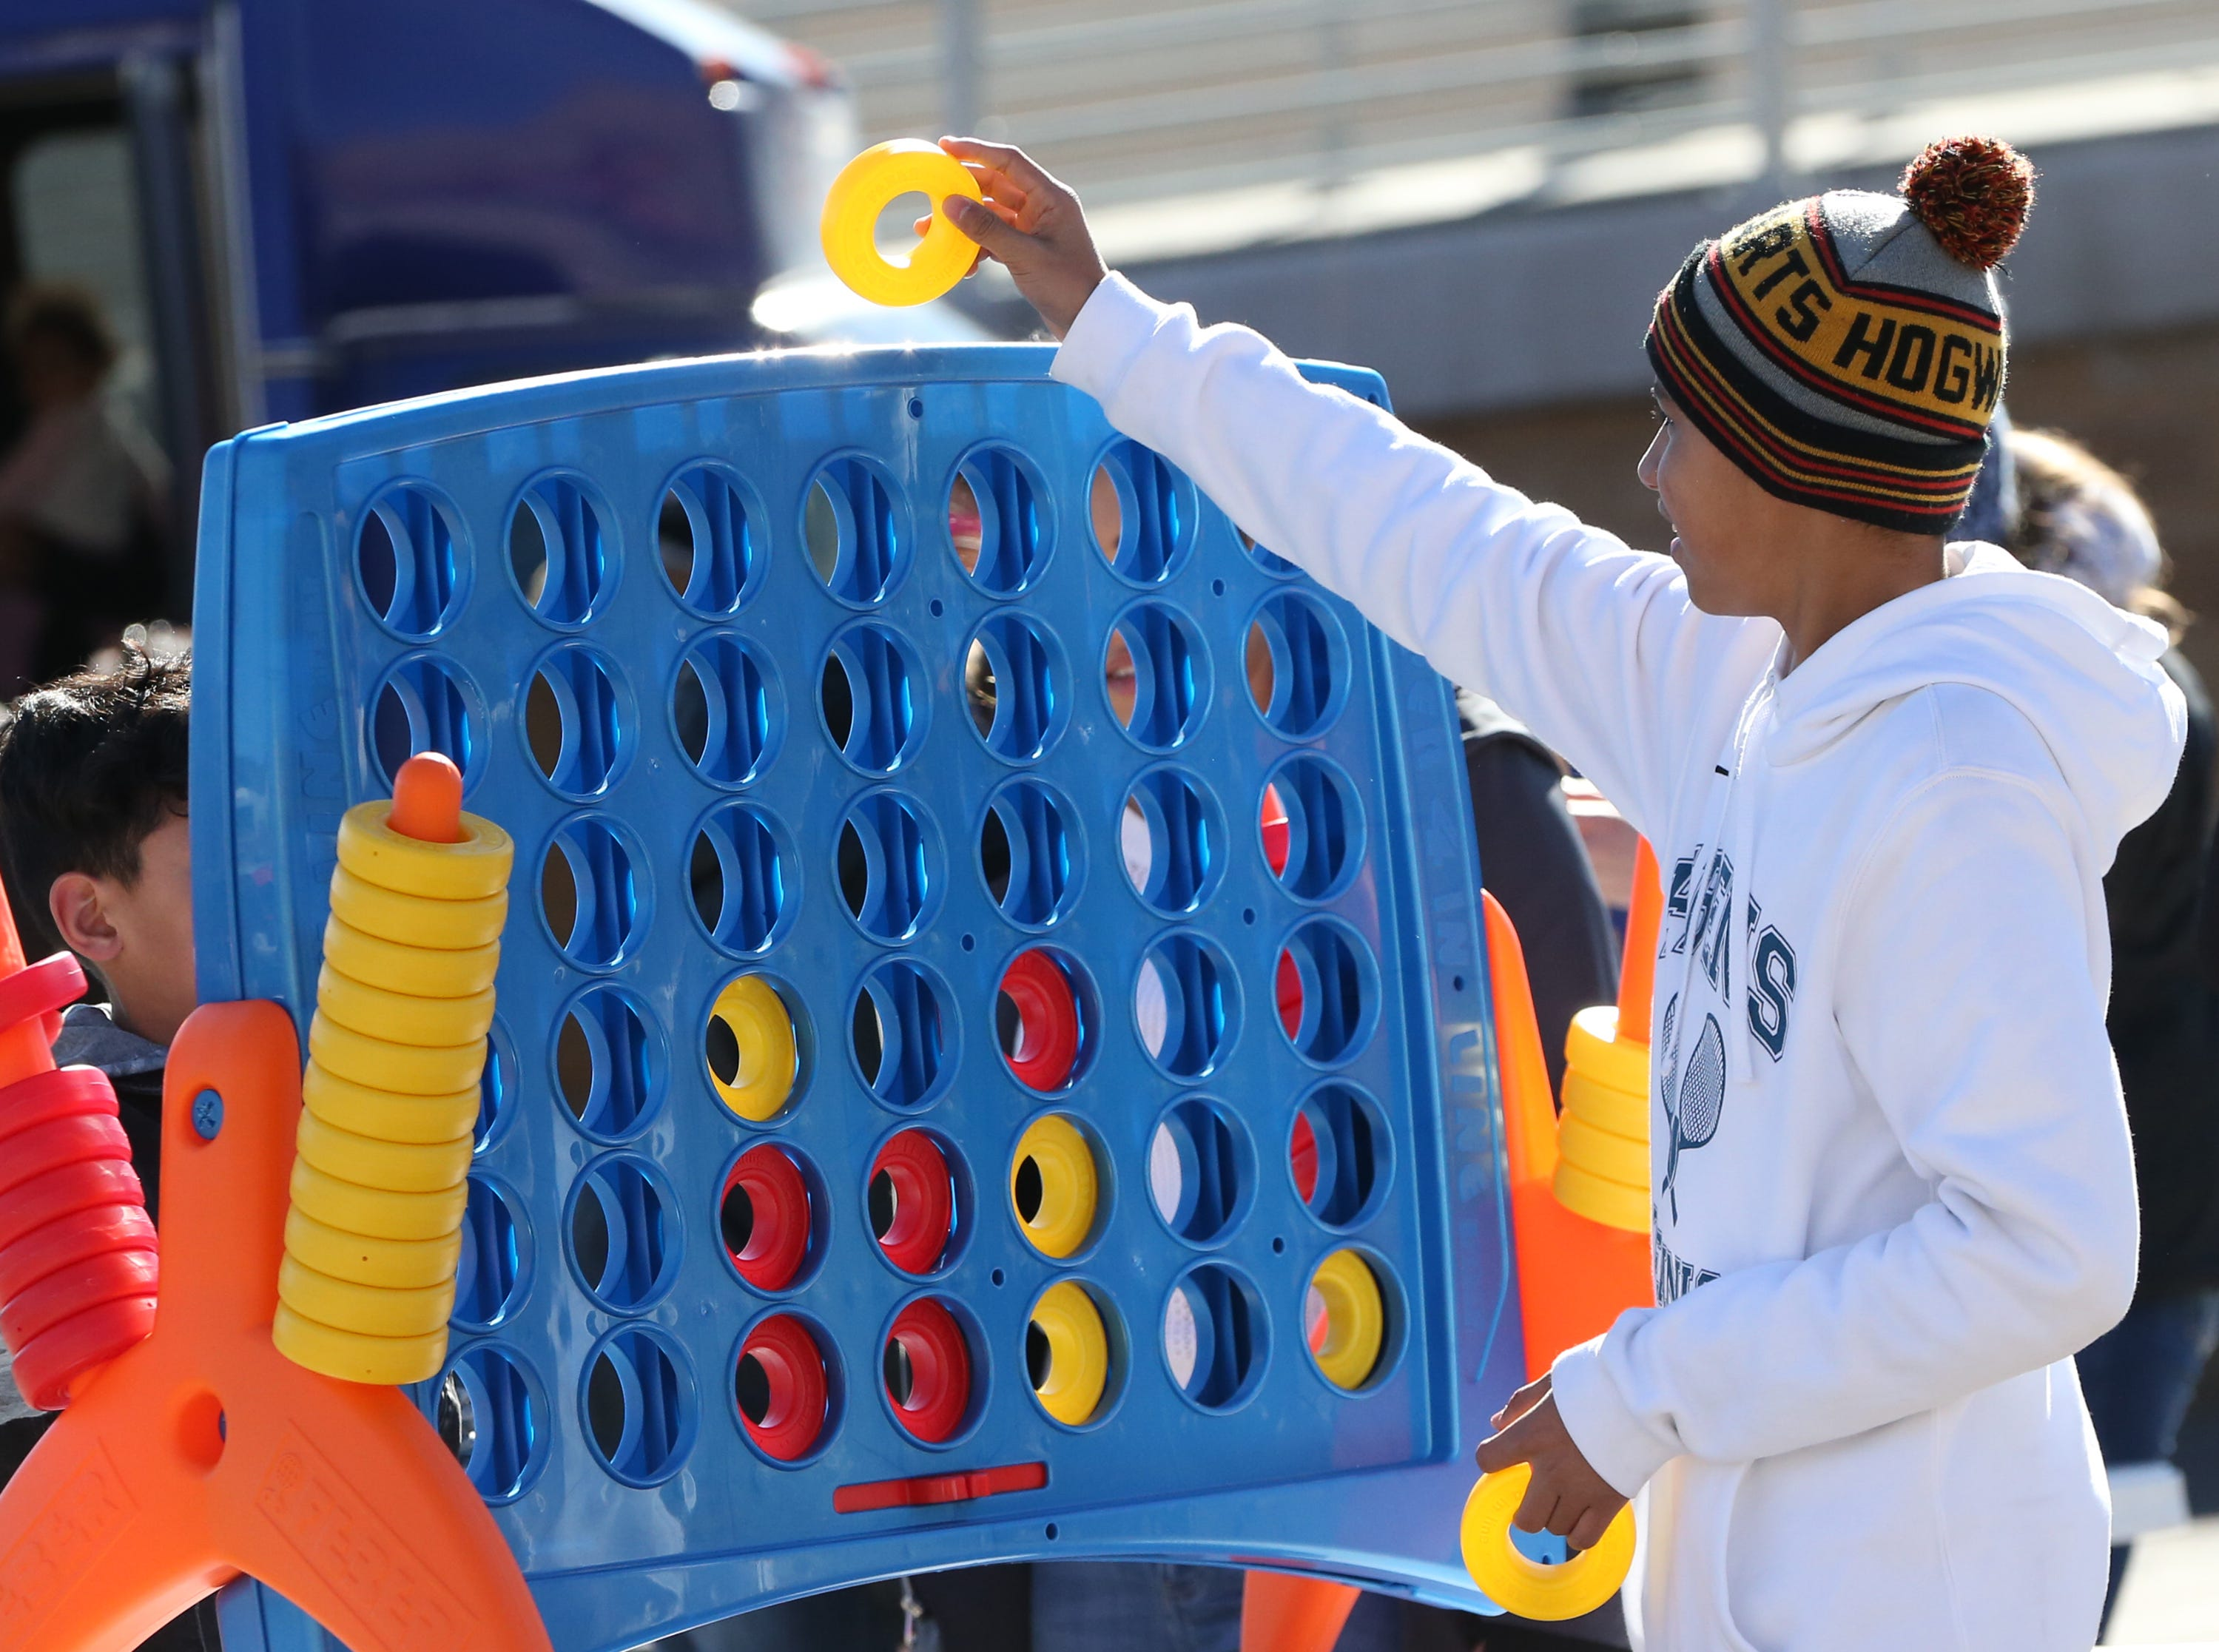 Marco Martinez of El Paso plays a 4 In Line game at a fan pre-game tailgate Monday.